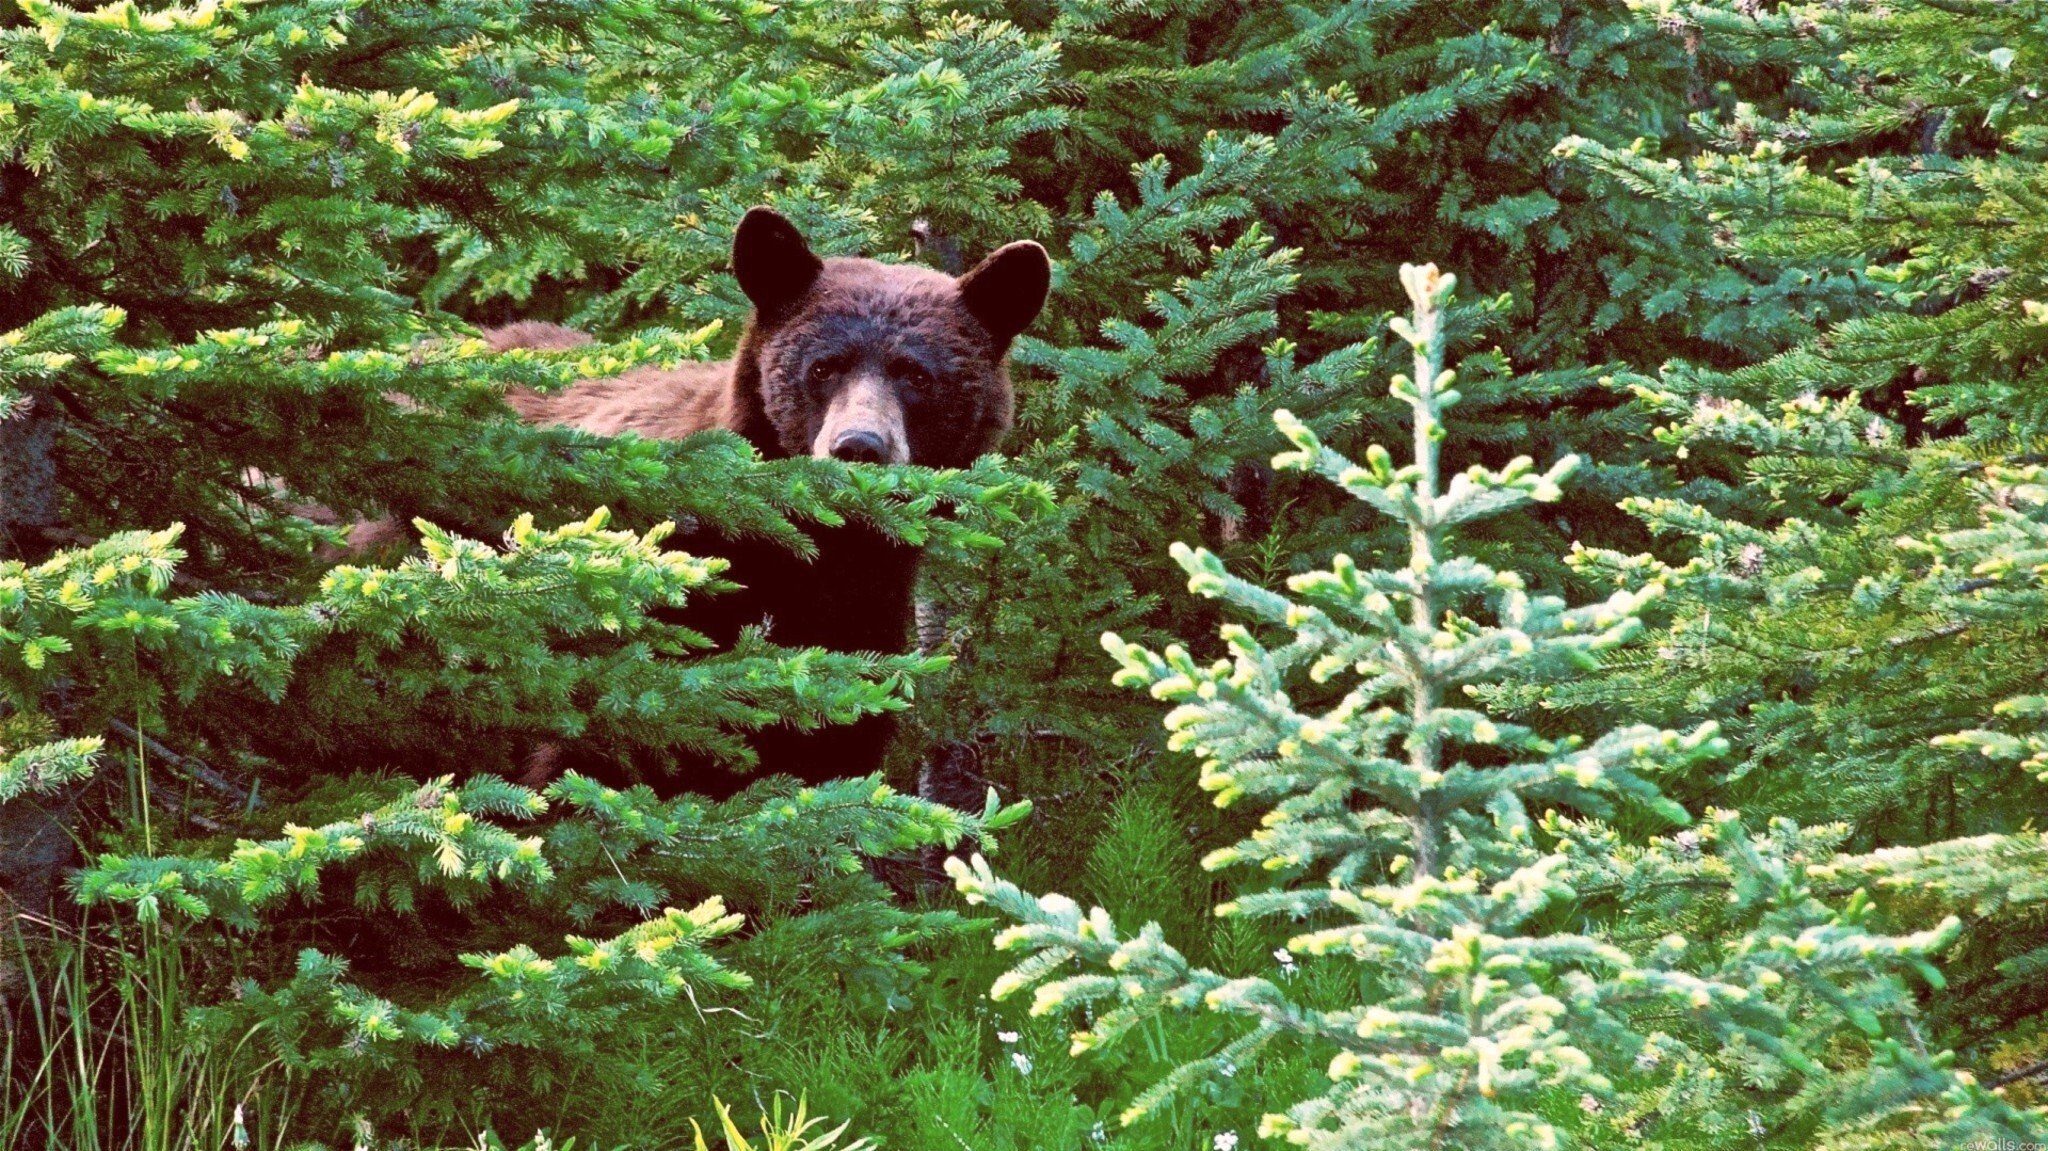 Brown bear in the woods 2048x1152 wallpaper